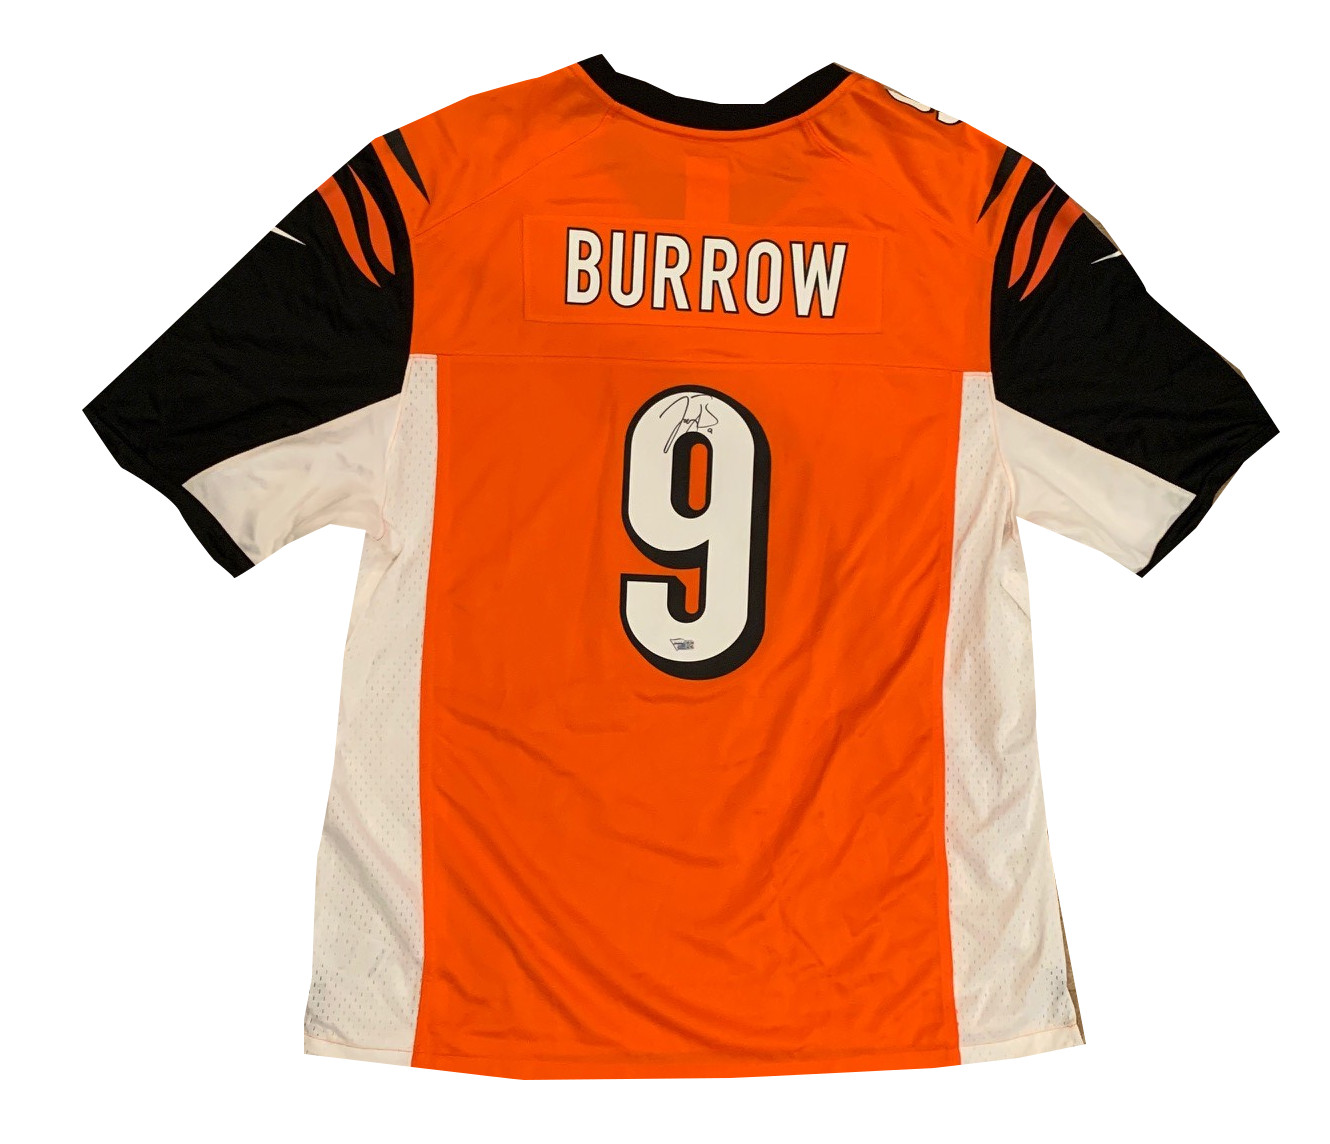 Joe Burrow Autographed Cincinnati Bengals Signed Orange NFL Nike Game Football Jersey Fanatics Authentic COA